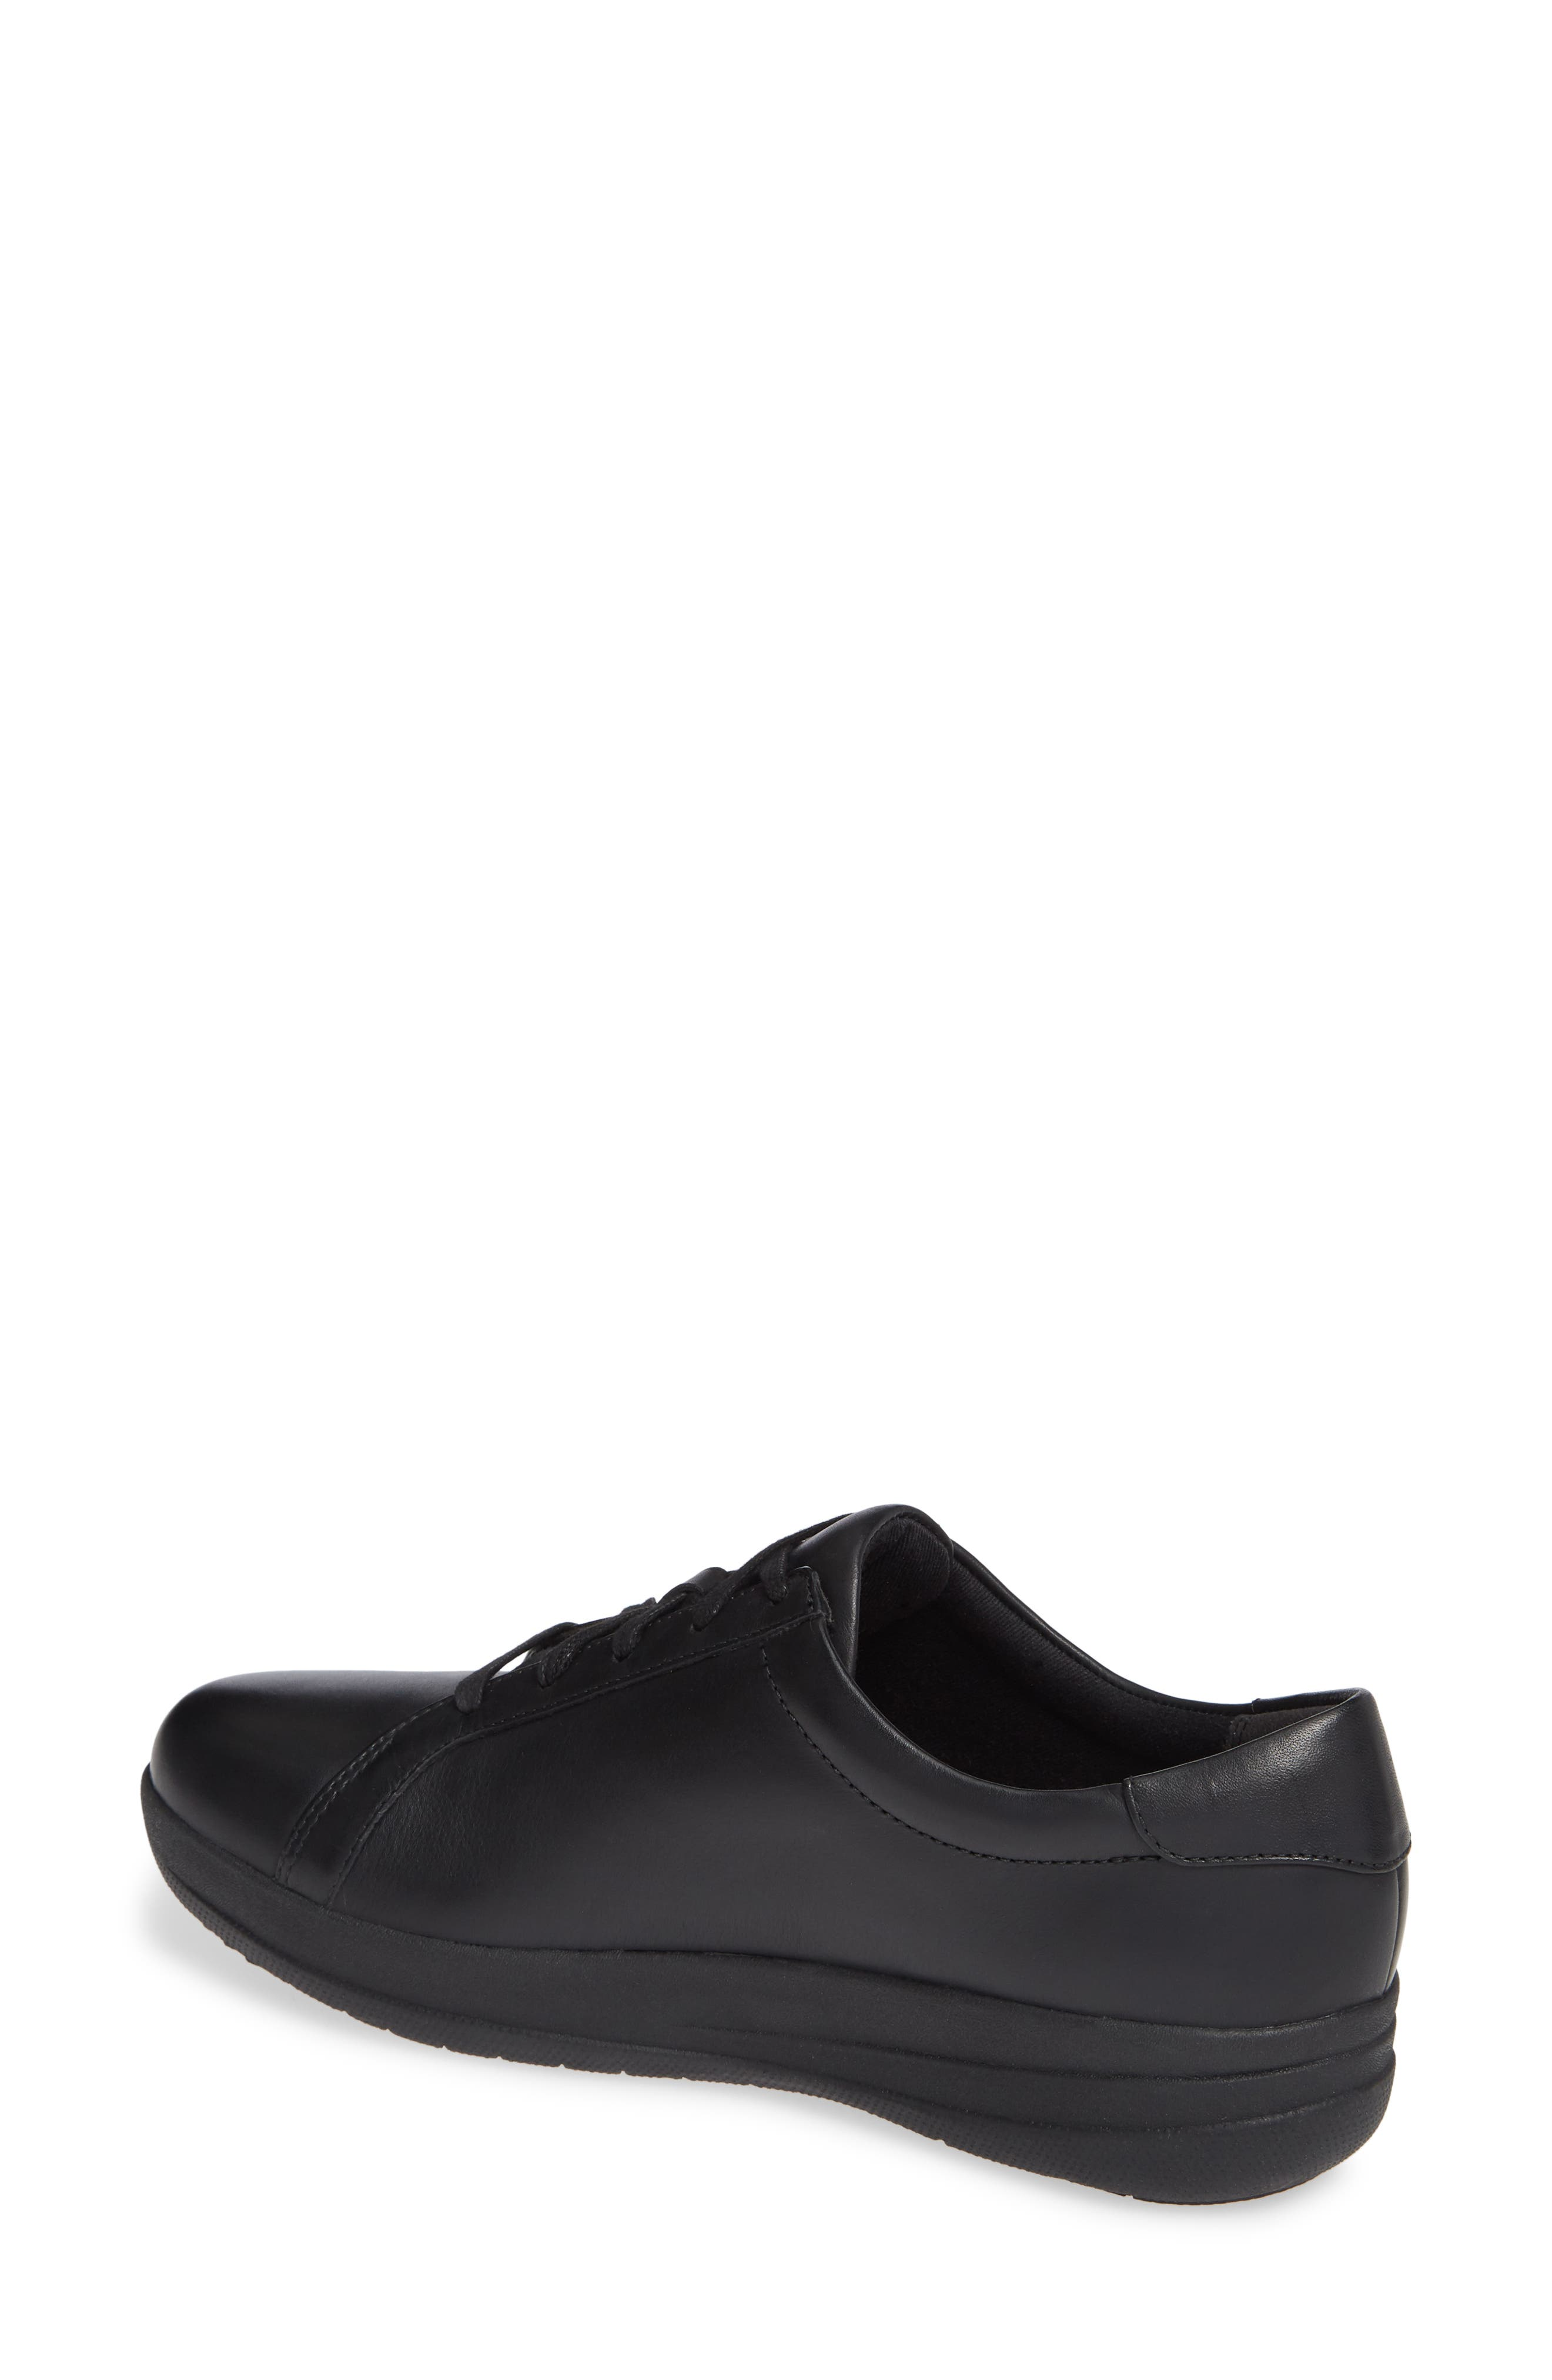 F-Sporty II Studded Sneaker,                             Alternate thumbnail 2, color,                             BLACK LEATHER